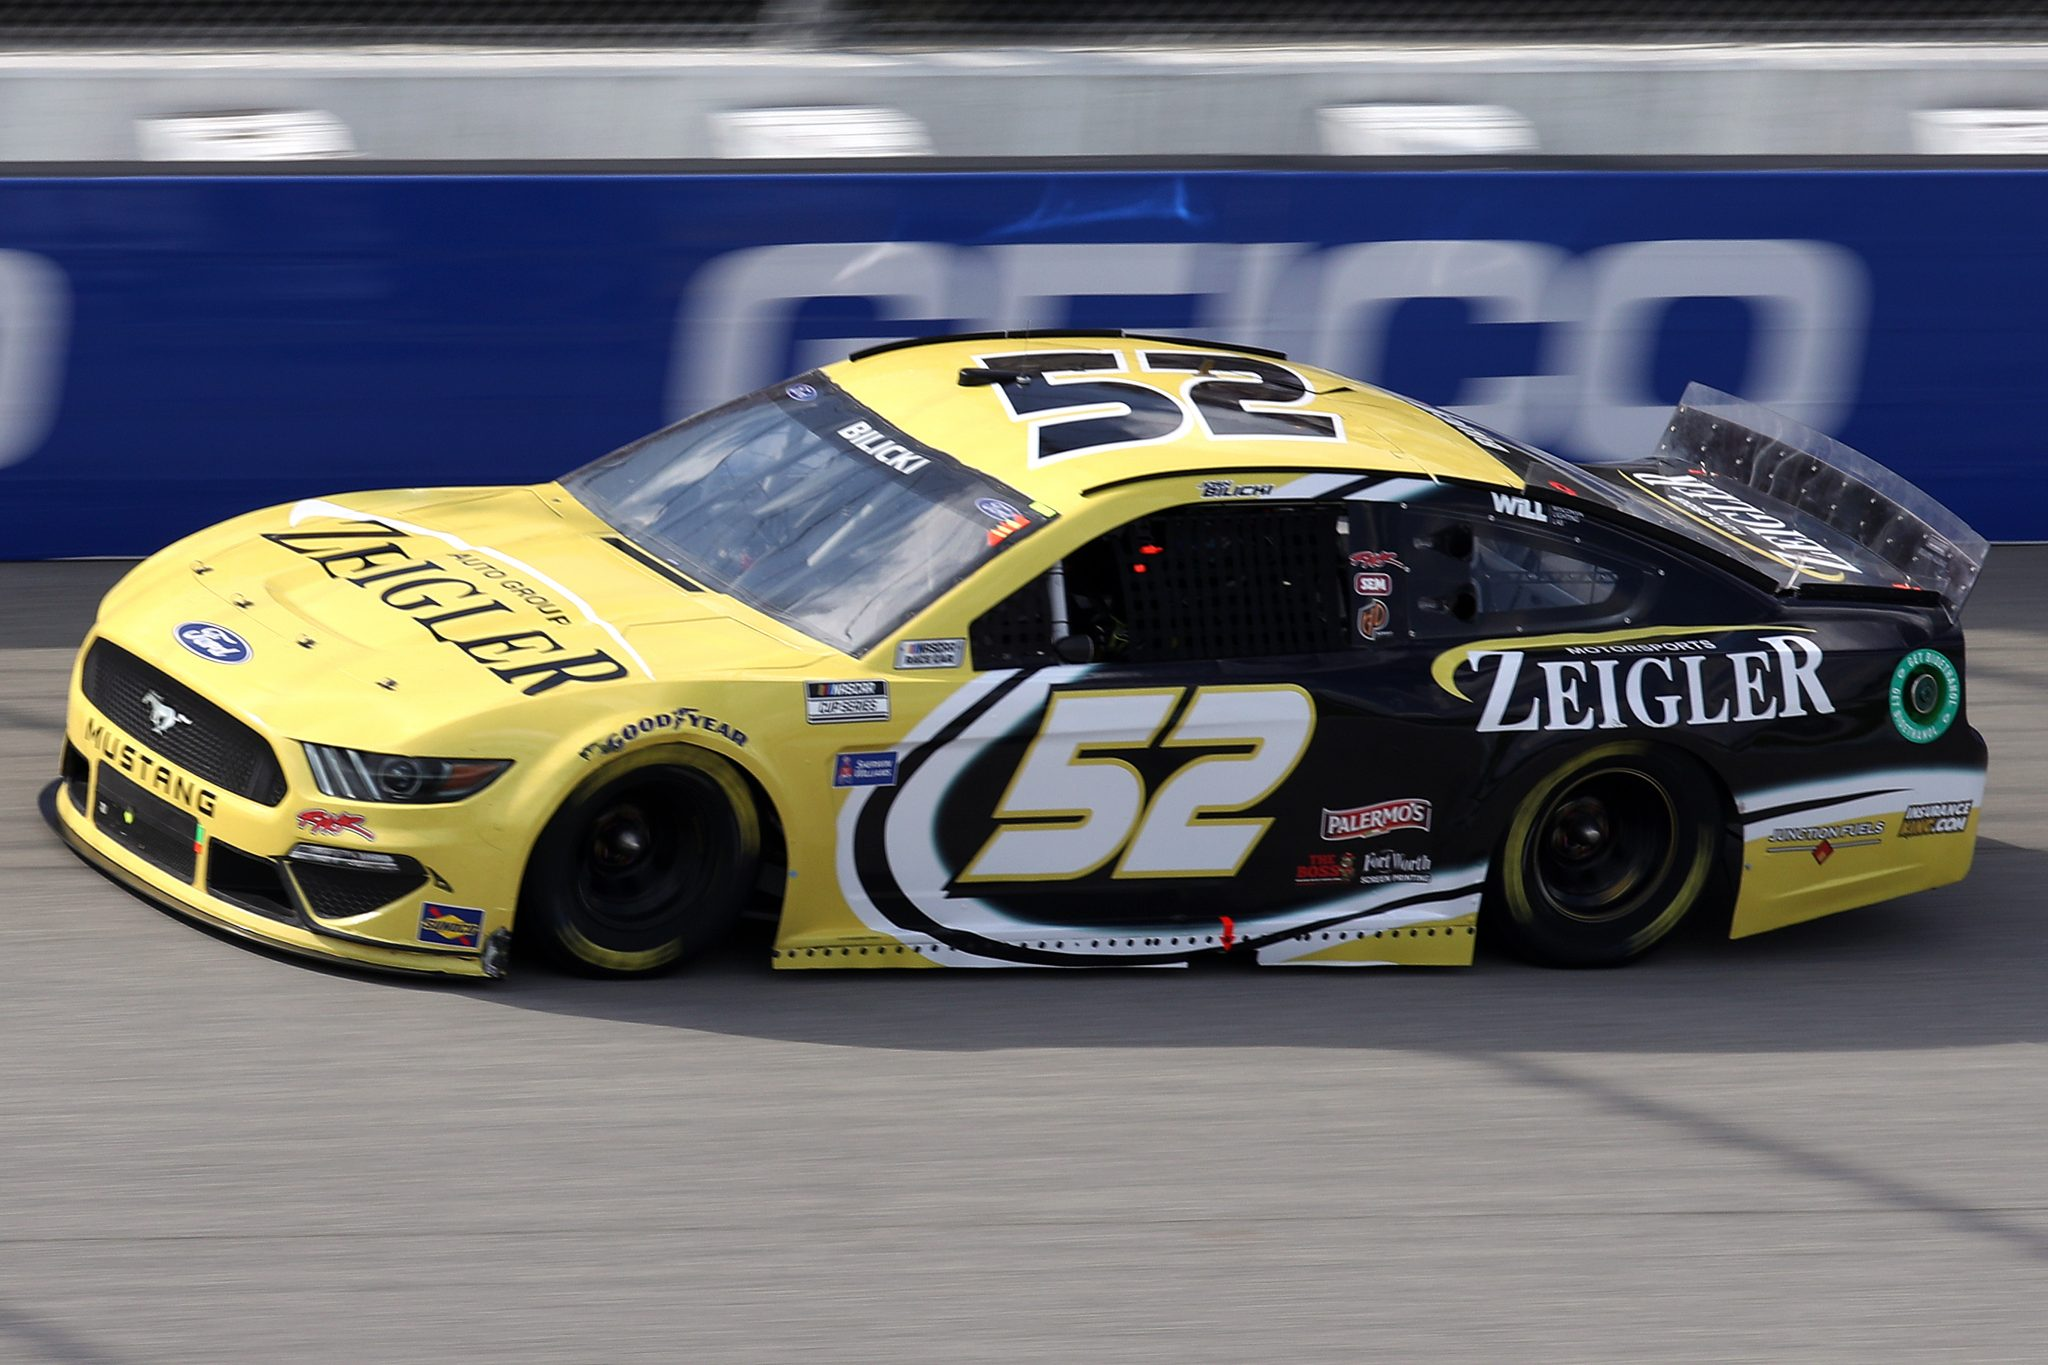 BROOKLYN, MICHIGAN - AUGUST 22: Josh Bilicki, driver of the #52 Zeigler Auto Group Ford, drives during the NASCAR Cup Series FireKeepers Casino 400 at Michigan International Speedway on August 22, 2021 in Brooklyn, Michigan. (Photo by Sean Gardner/Getty Images)   Getty Images